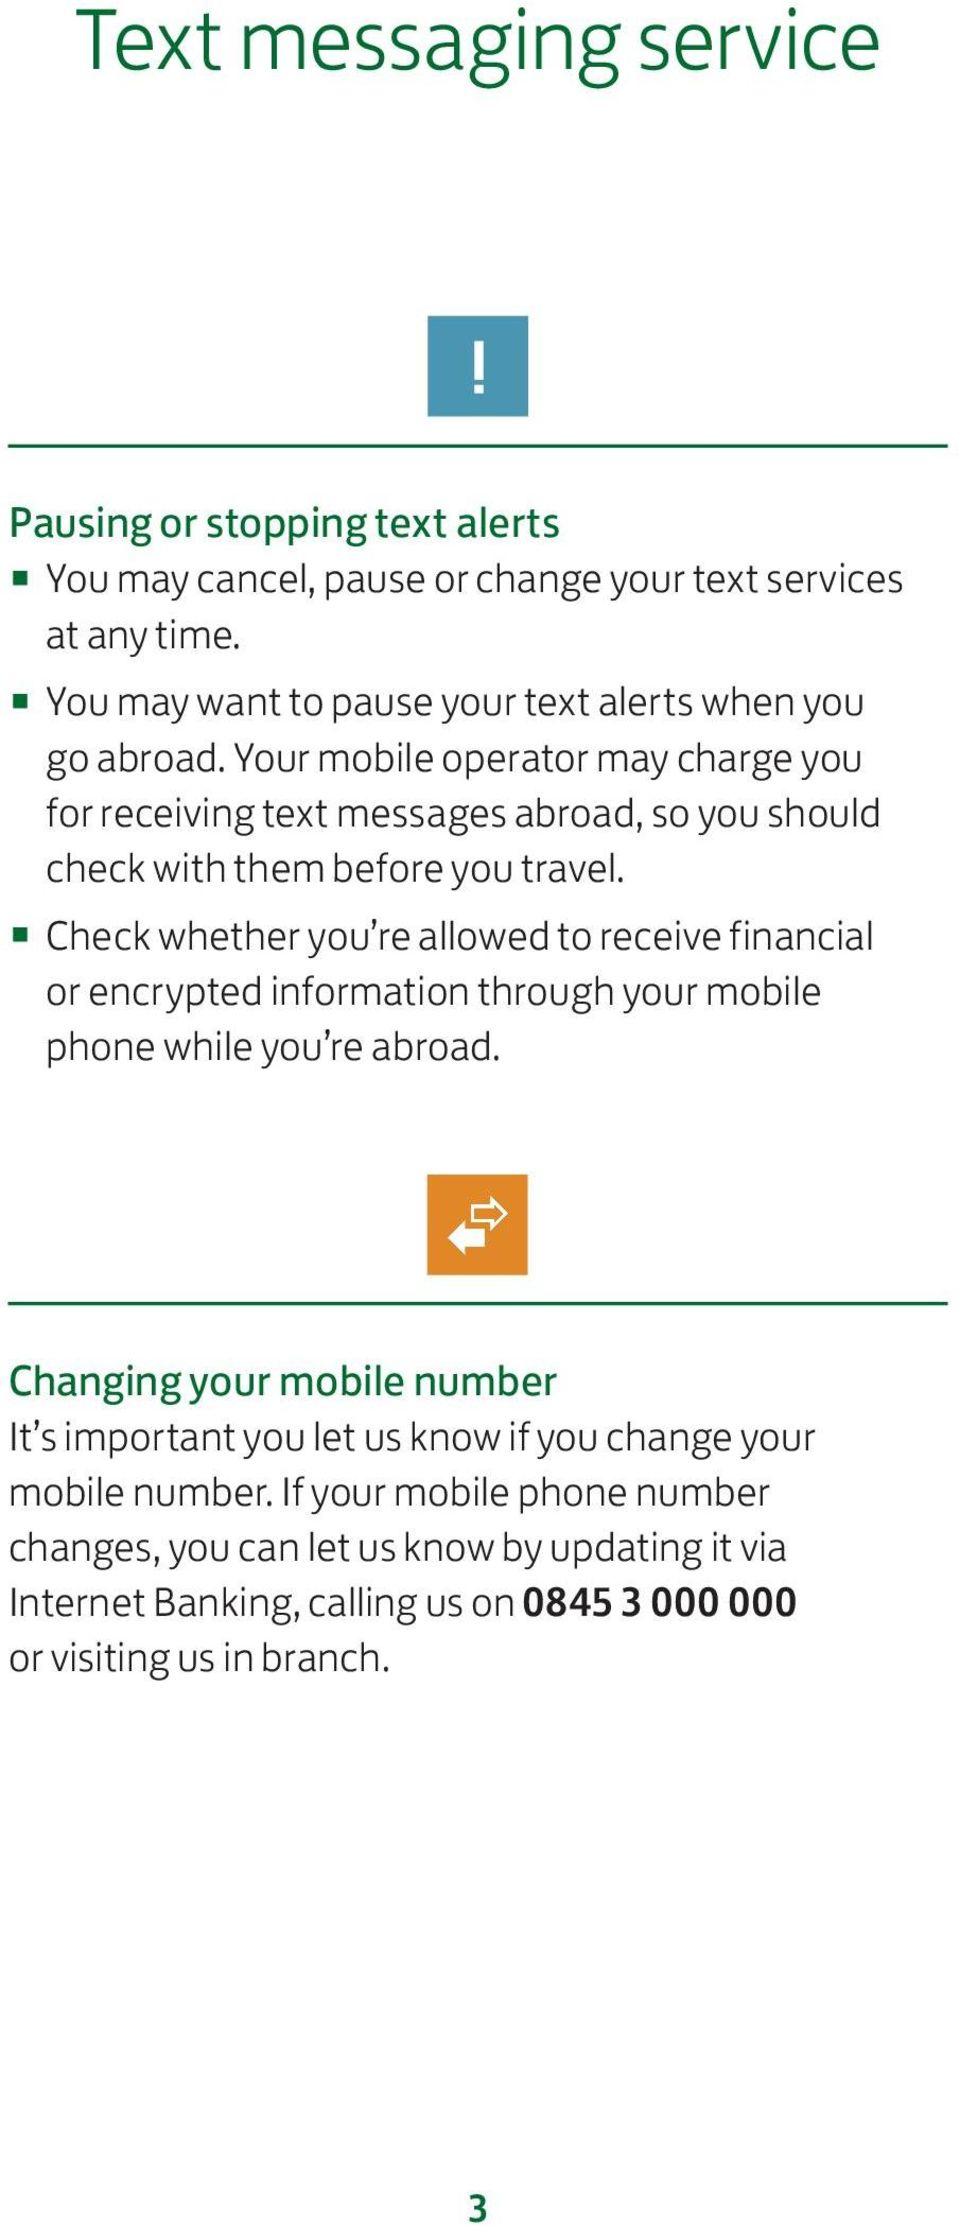 Your mobile operator may charge you for receiving text messages abroad, so you should check with them before you travel.